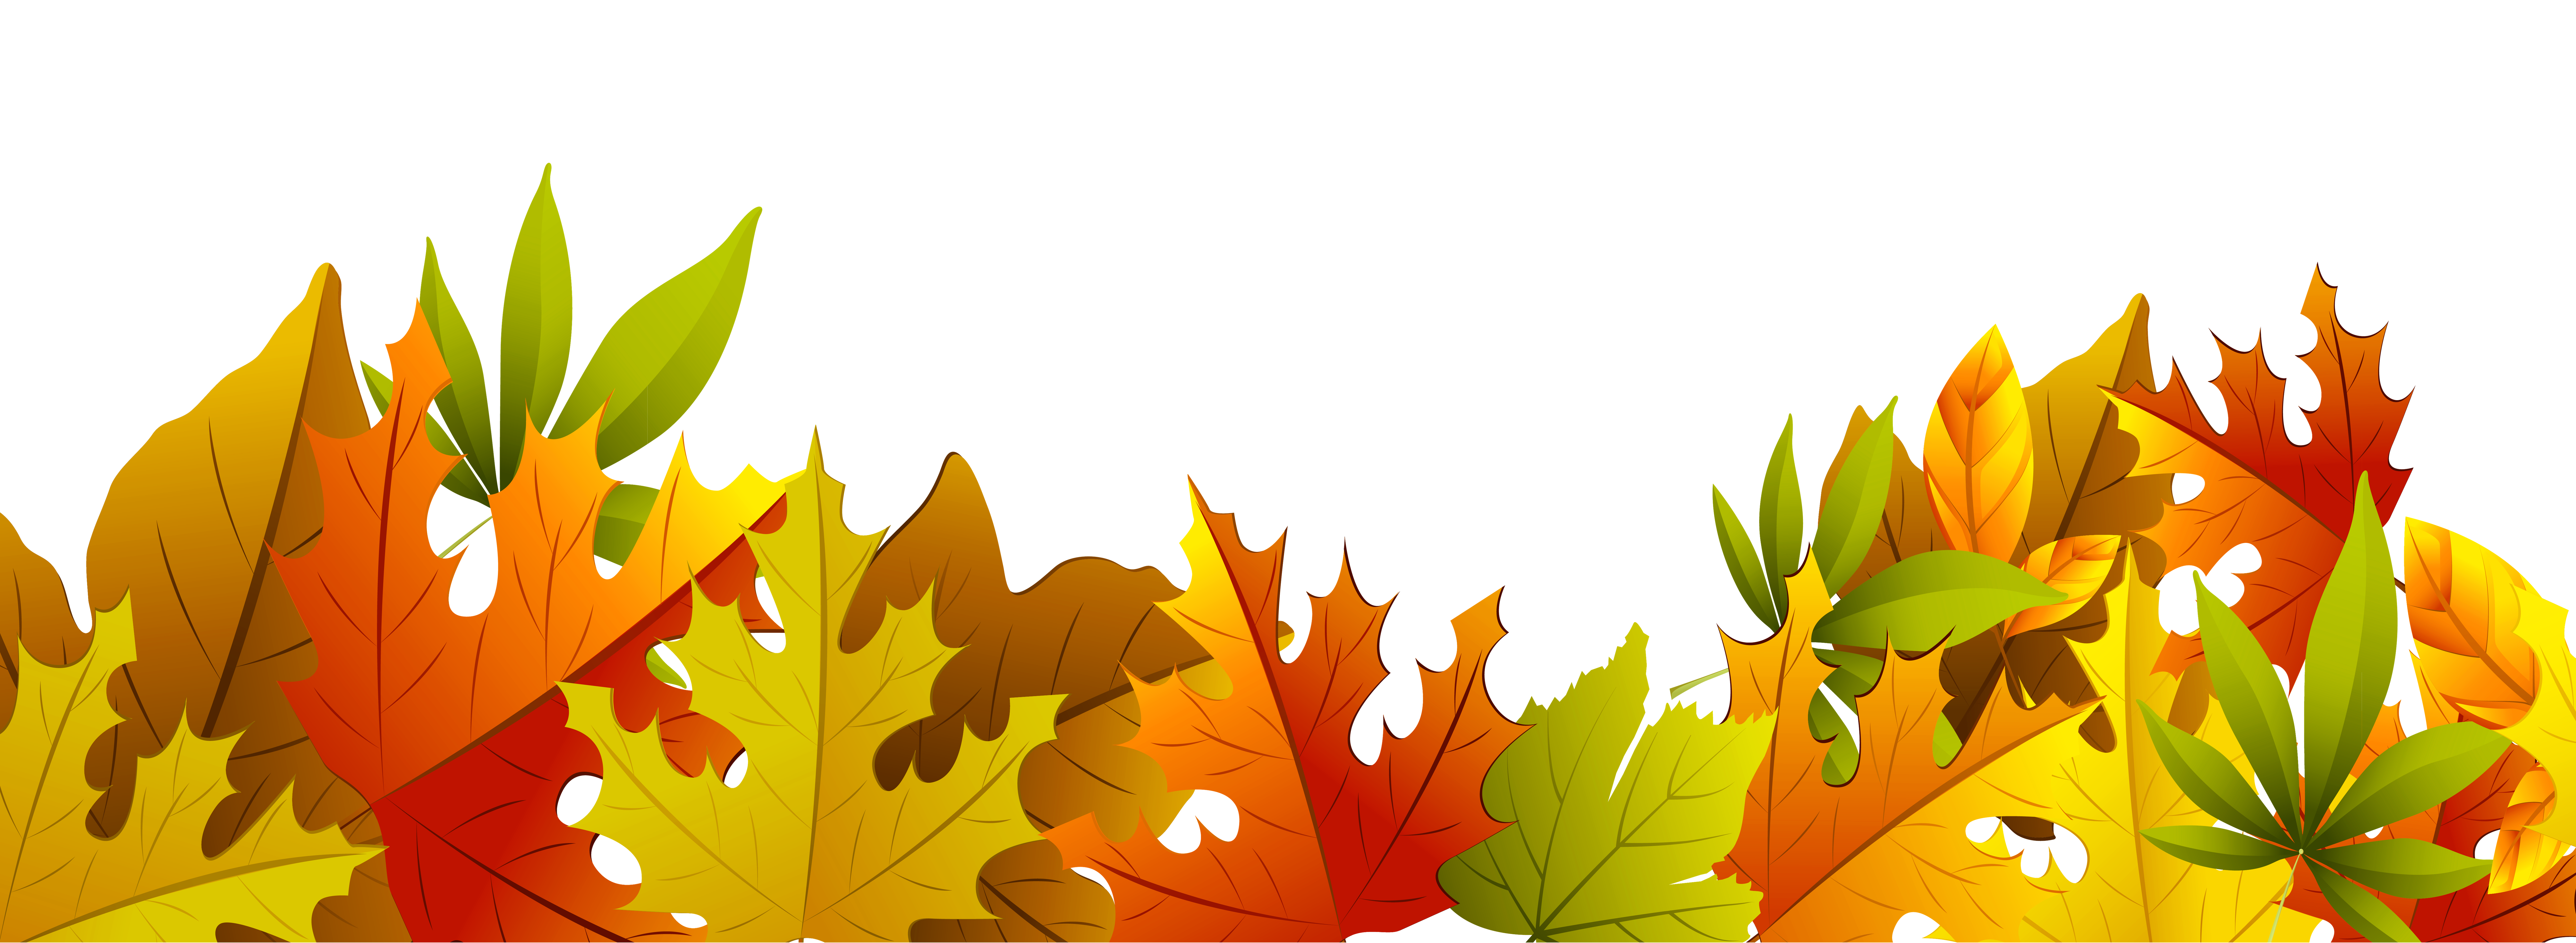 Best Fall Leaves Clip Art #22635 - Clipartion.com